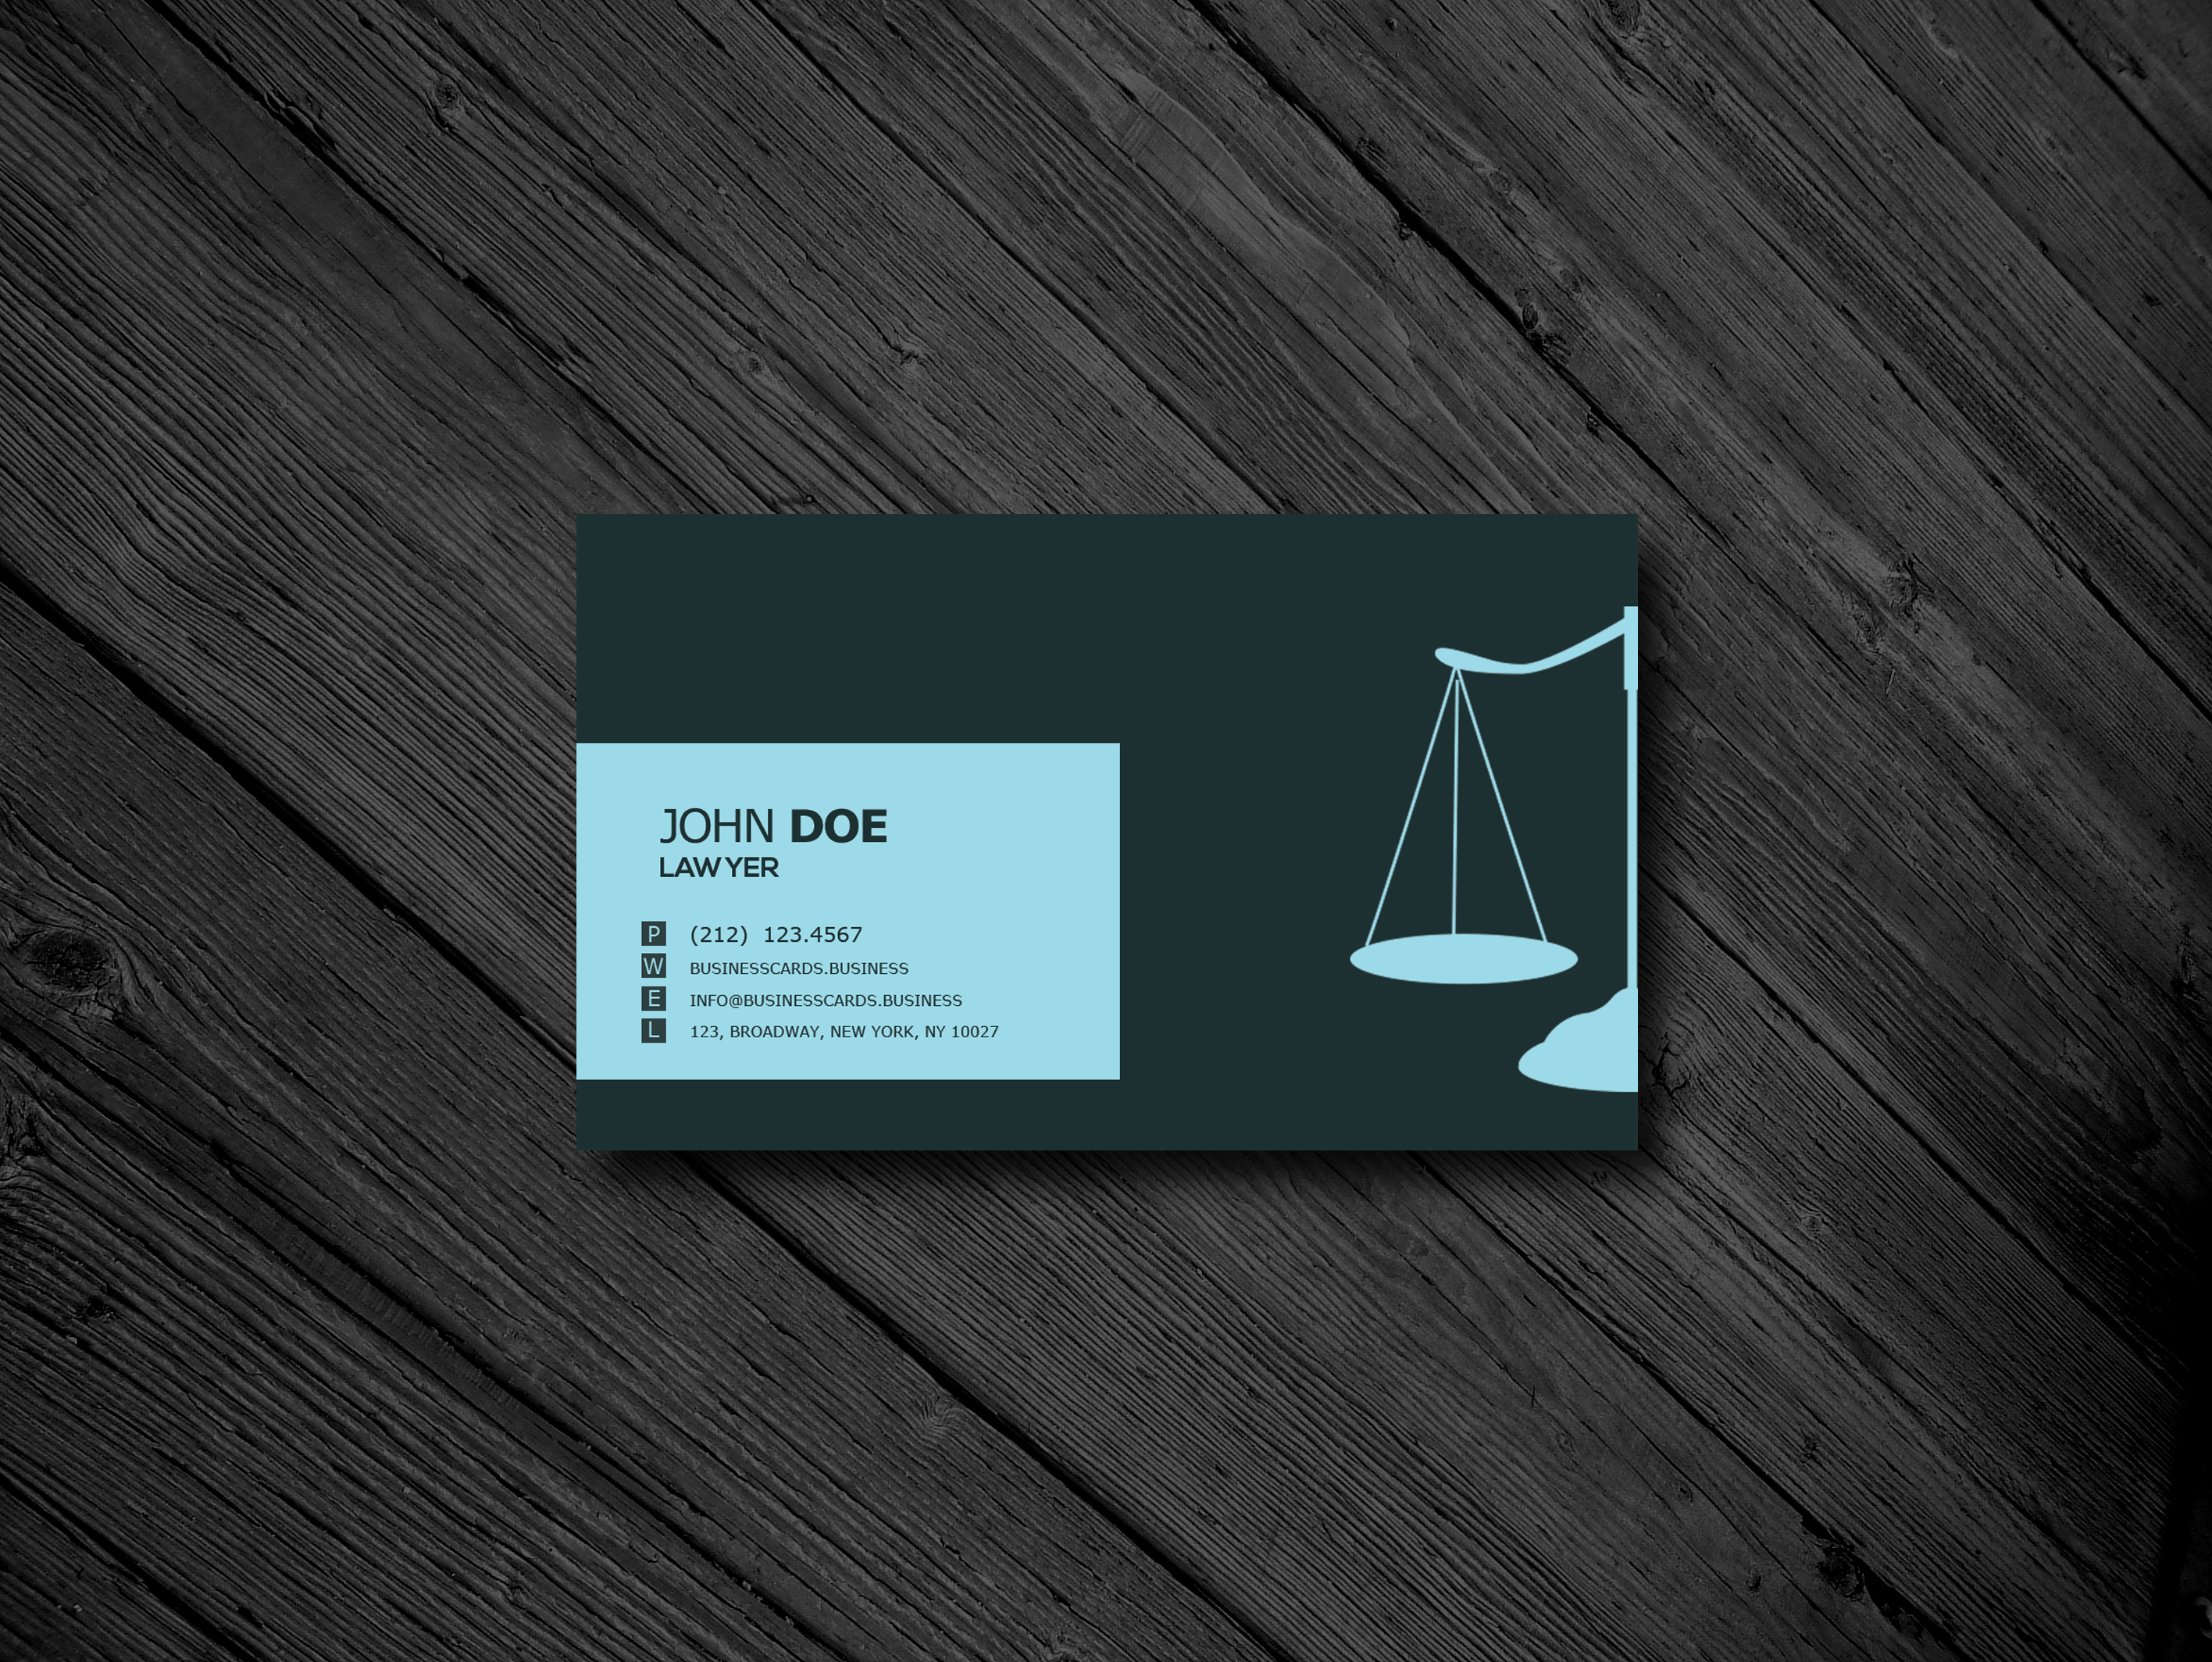 Free business card templates business cards templates free lawyer business card psd template flashek Gallery